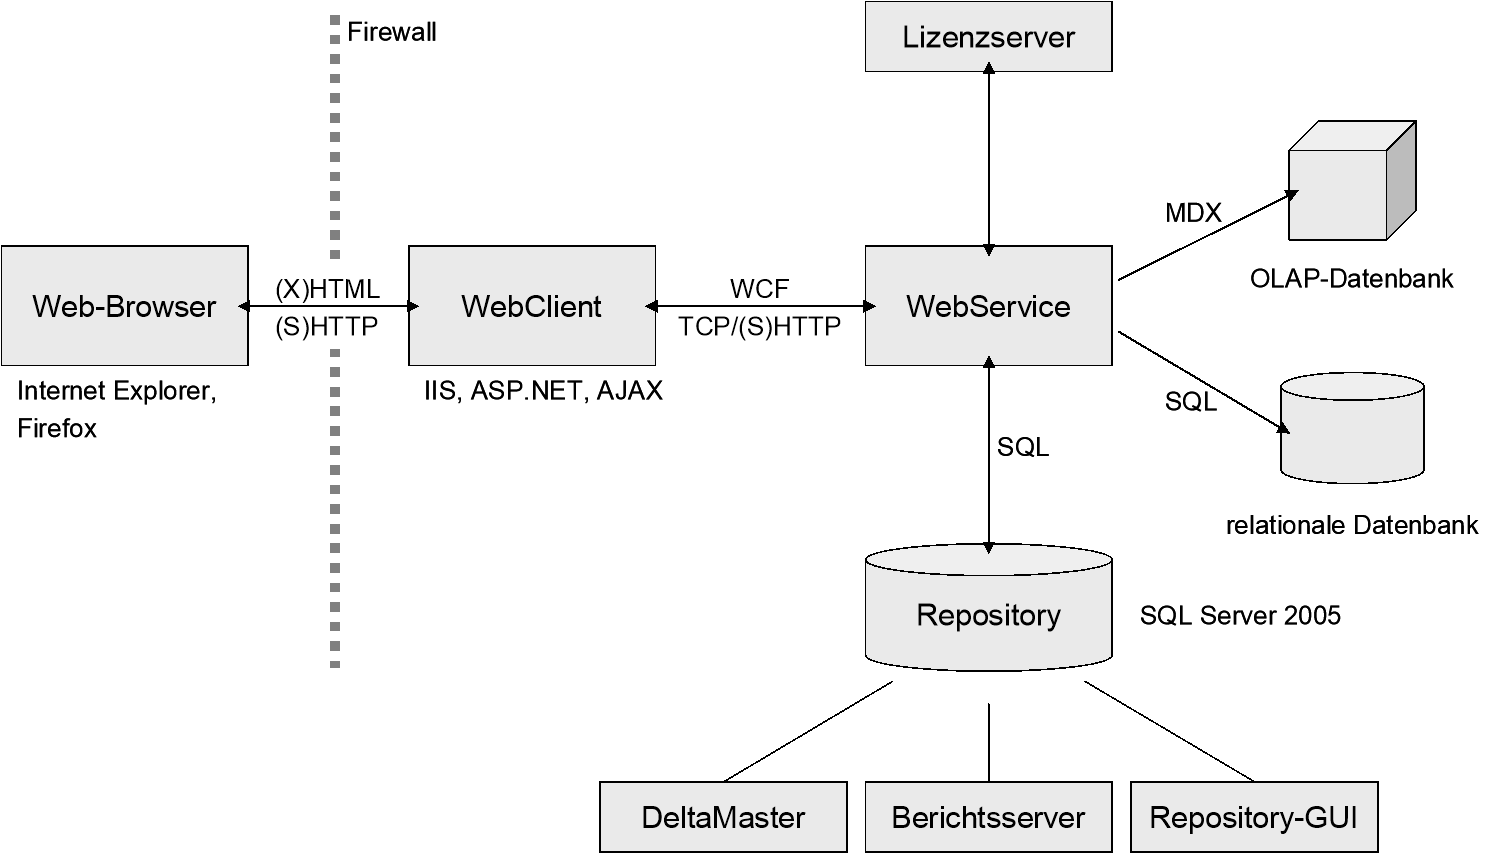 Komponenten der Weboption: Web-Browser, WebClient, WebService, OLAP-Datenbank und relationale Datenbank, Repository, Lizenzserver